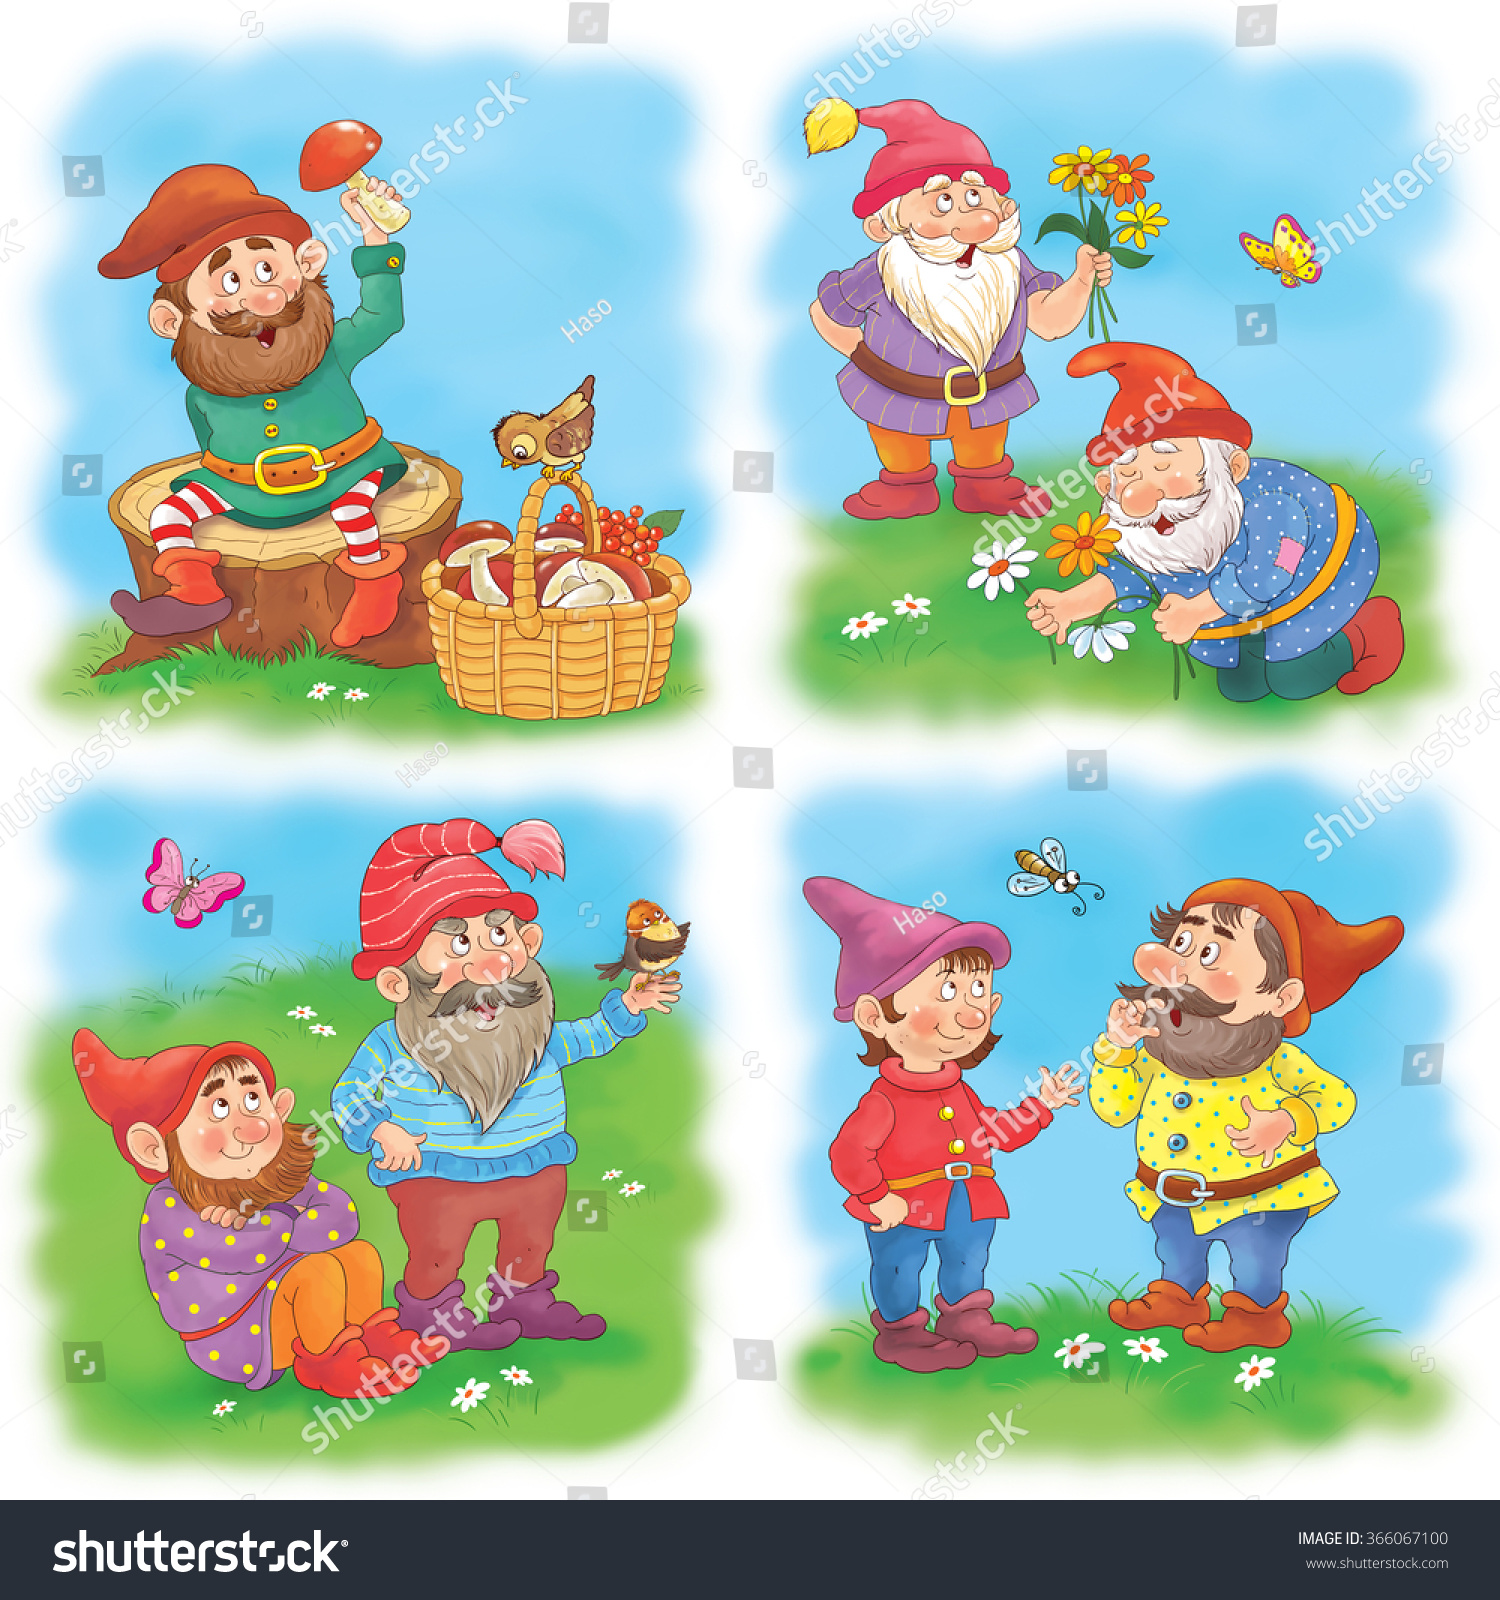 Childrens Wallpaper Set Of Cute Fairy Tale Characters Seven Dwarfs